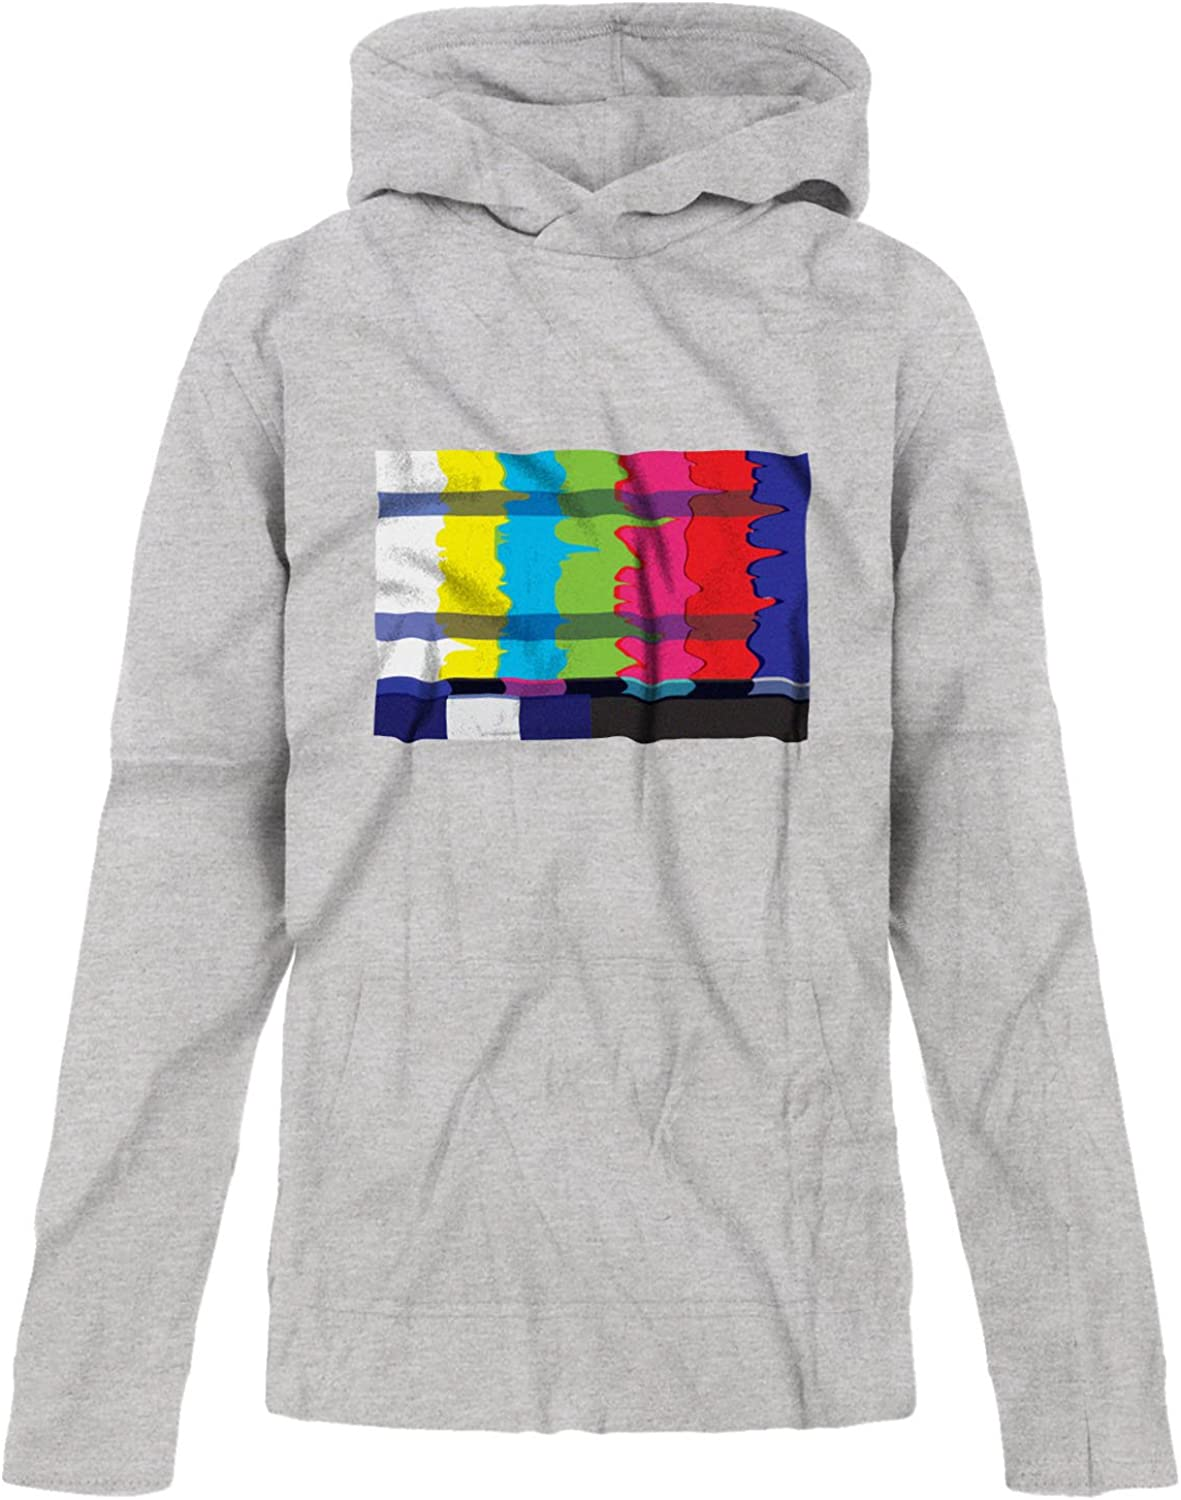 BSW Youth Girls No Channel Color Bars Vintage Off-Air TV Premium Hoodie